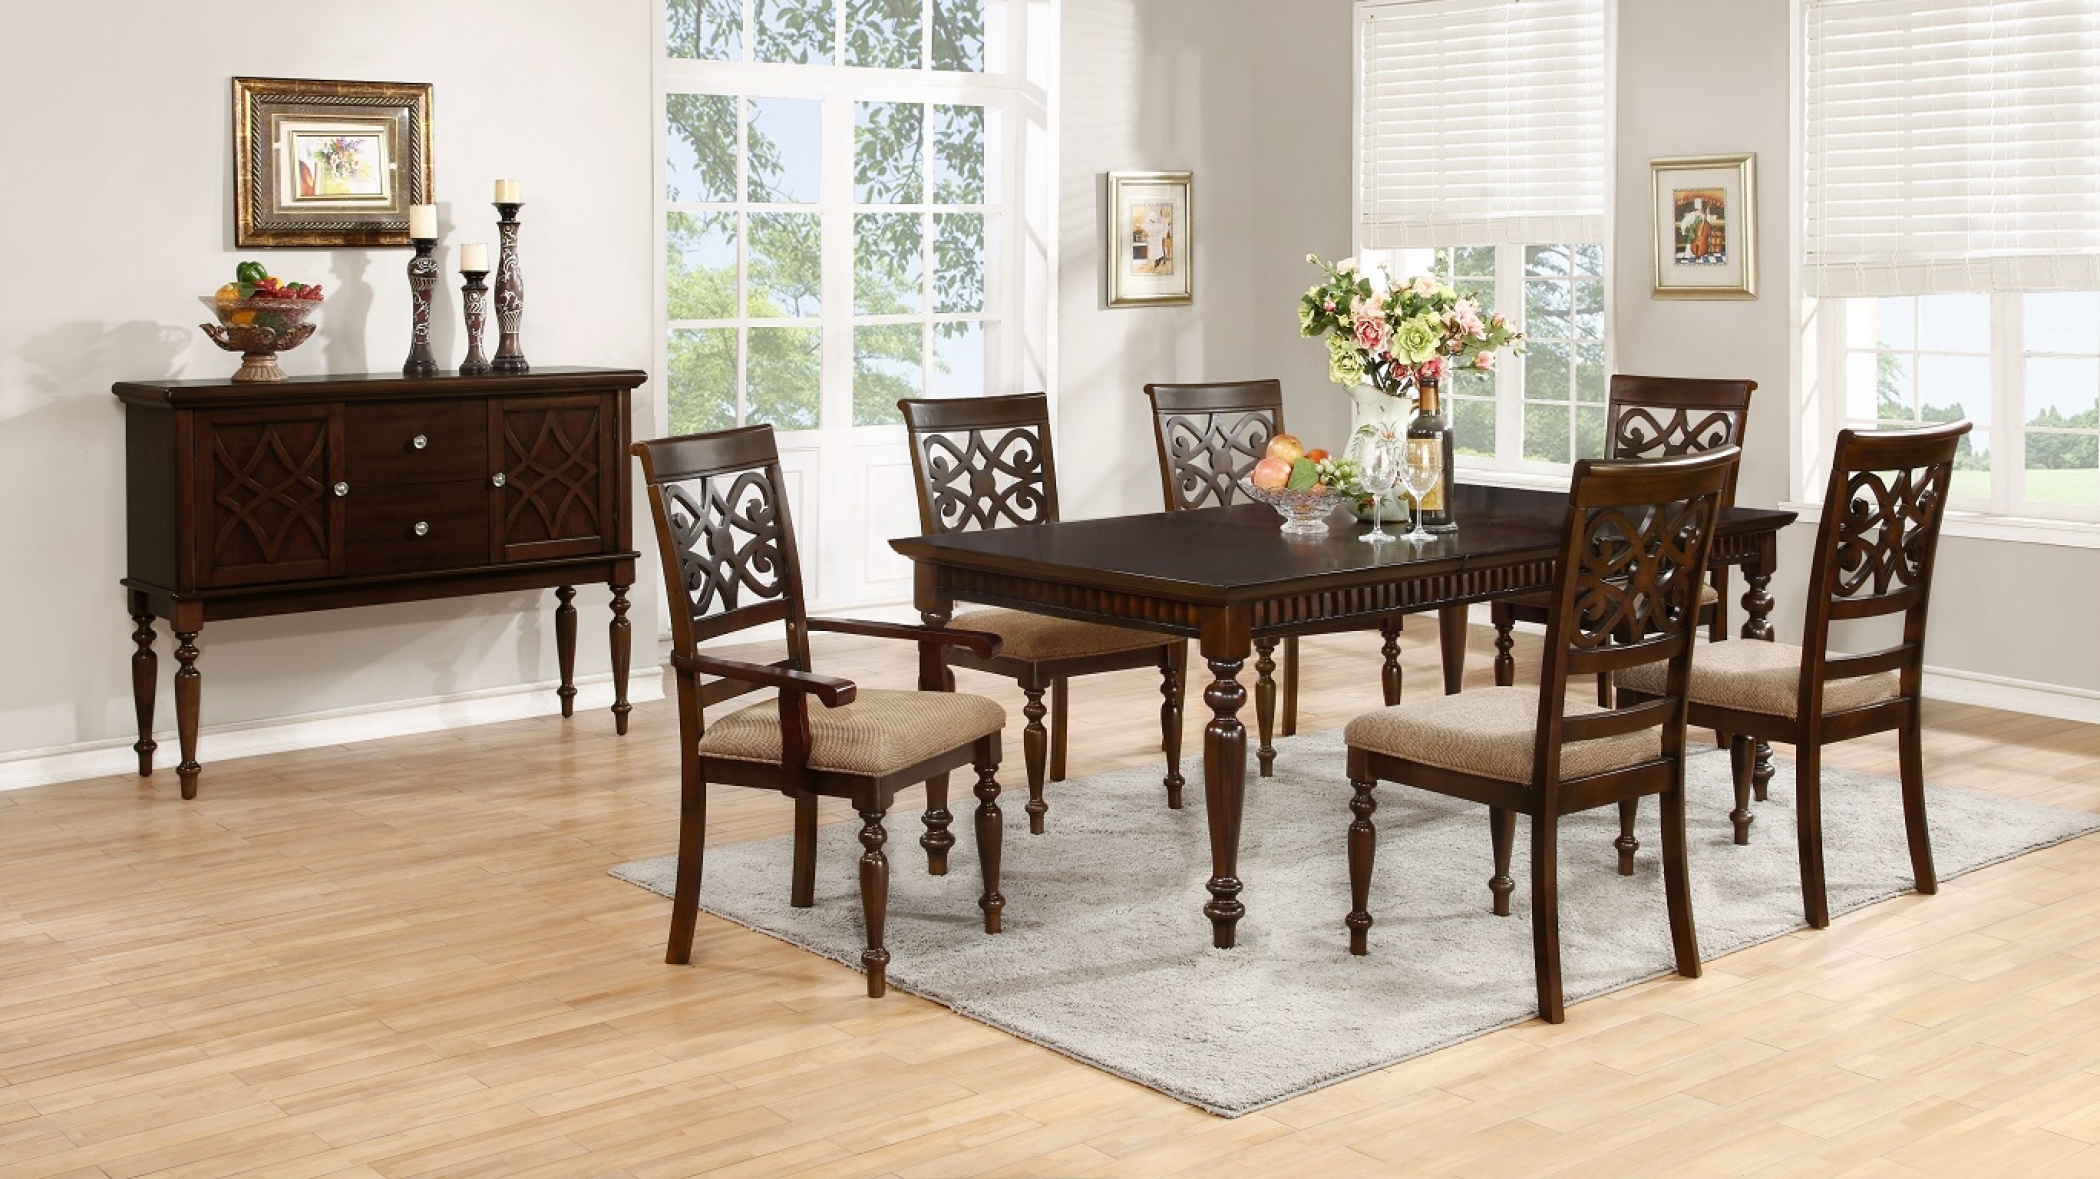 Dining rooms standard height furniture plus delaware for Dining room sets under 500 00